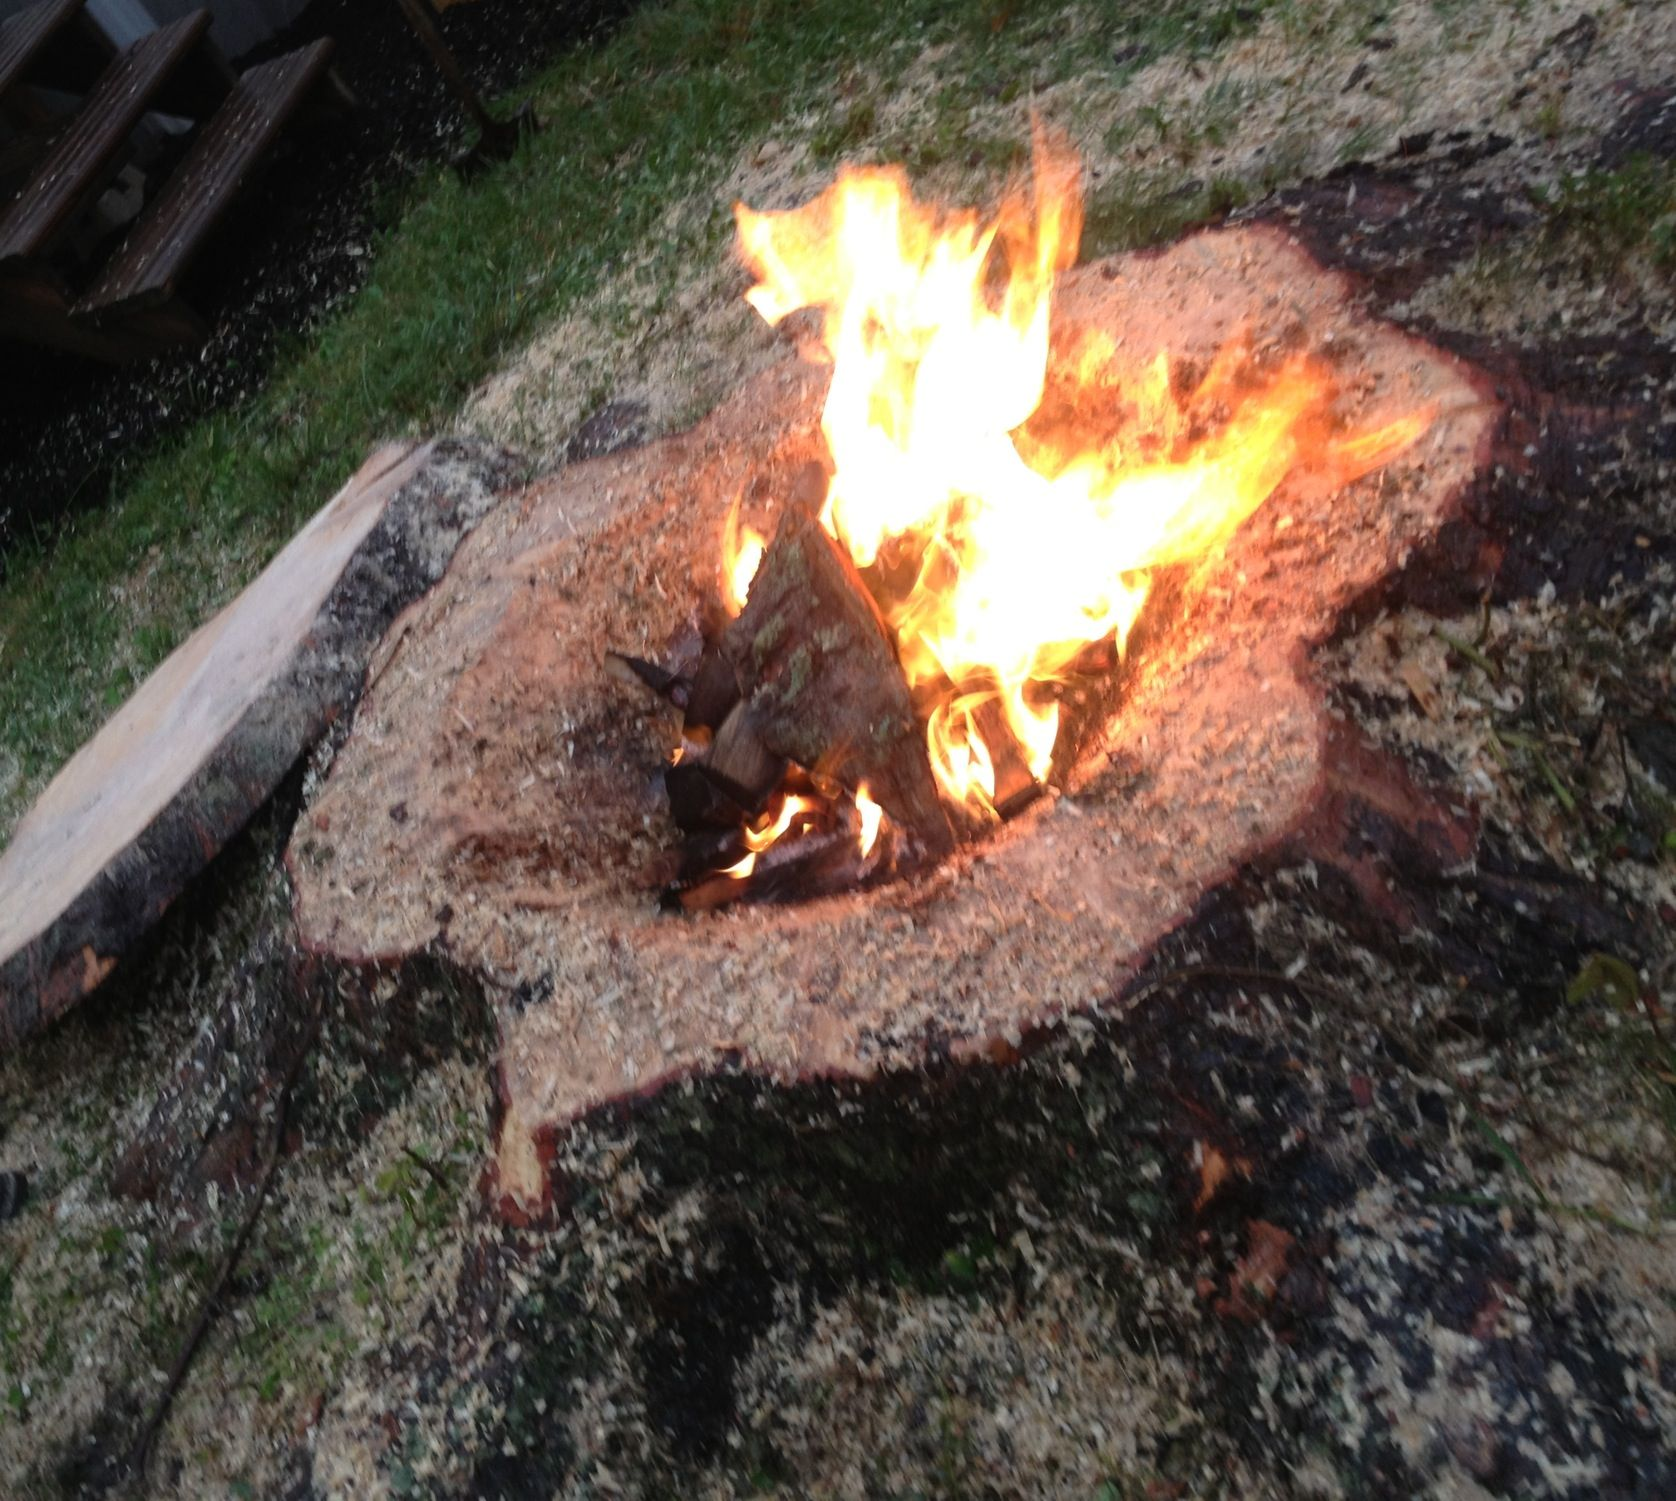 tree stump transformed into an awesome fire pit complete with lid to